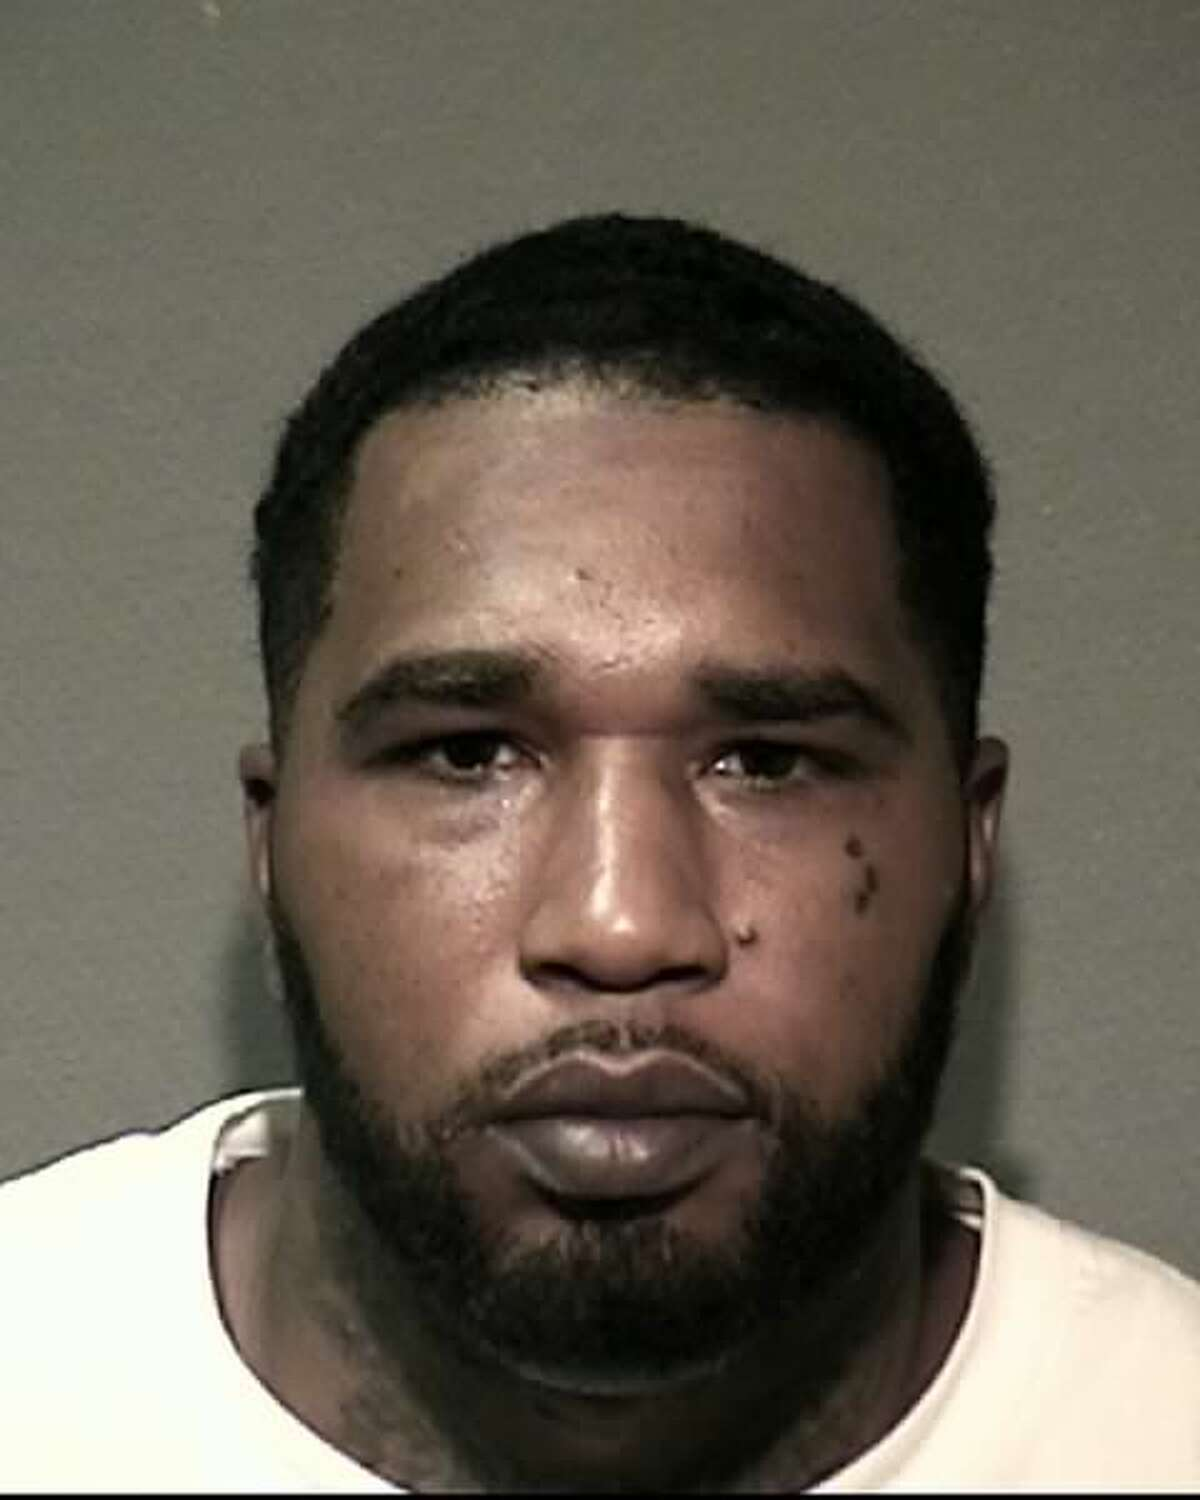 Vincent Young died by suicide in the Harris County jail.